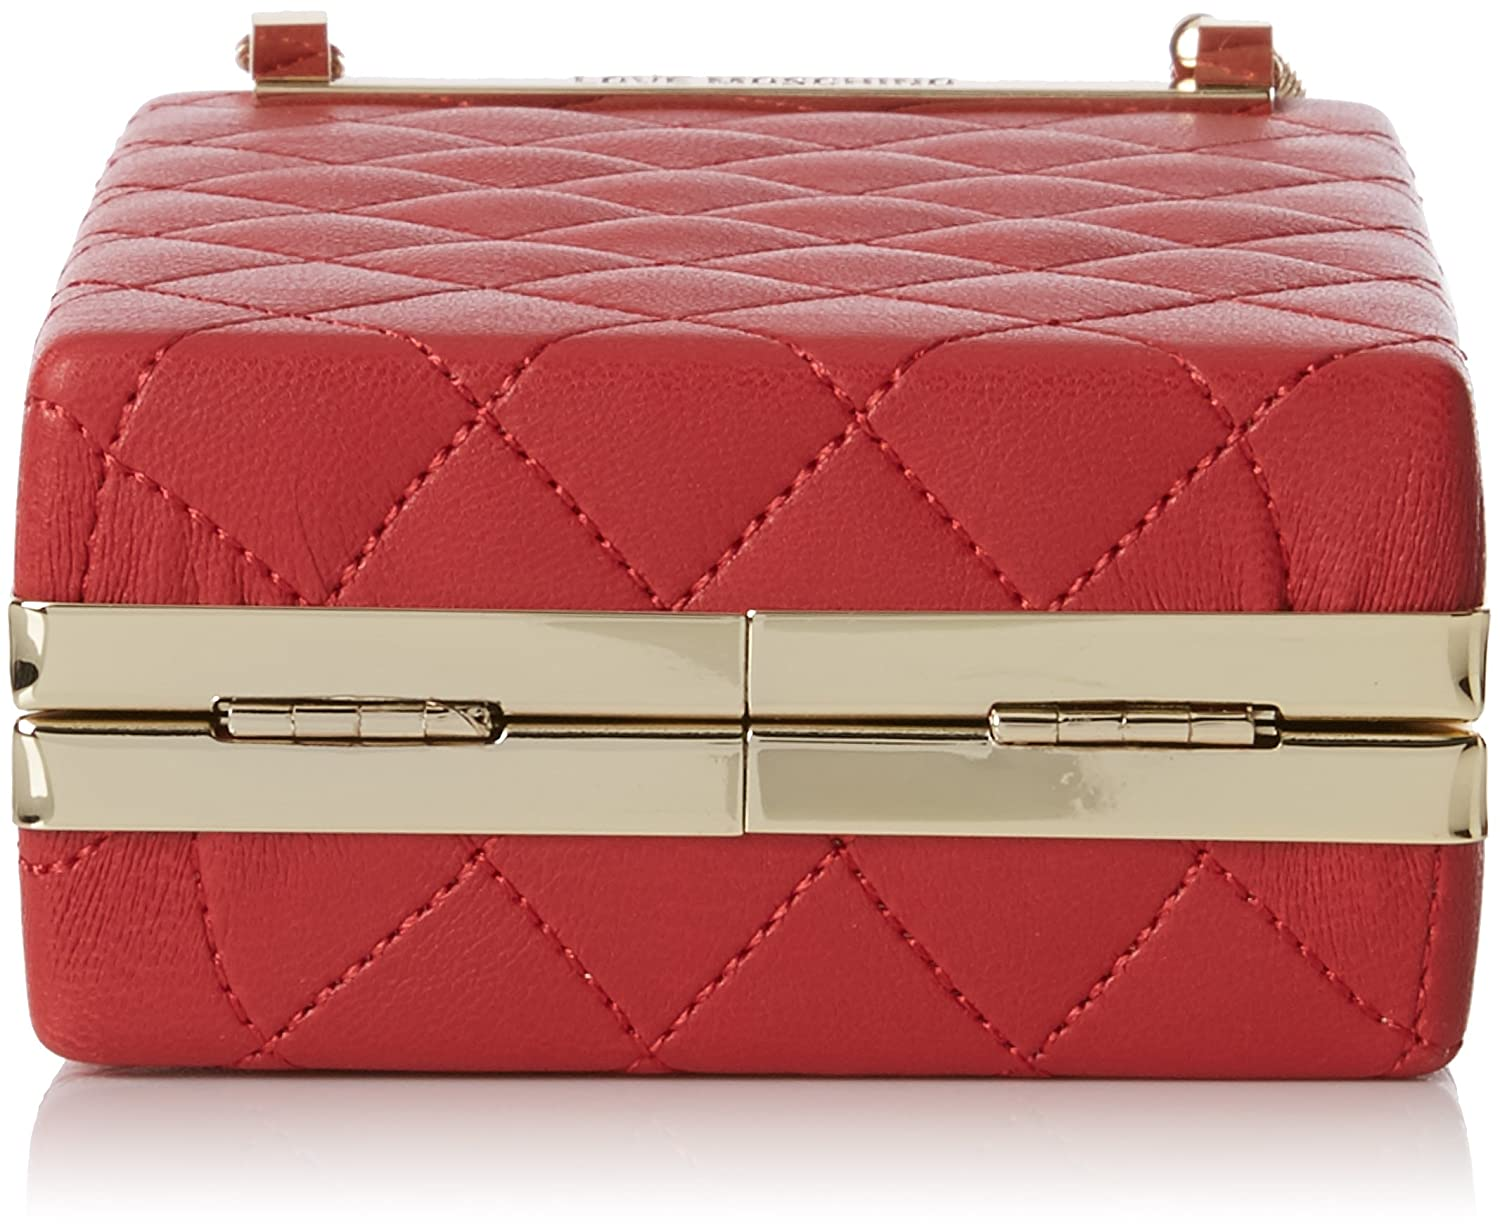 Borsa Quilted Nappa Pu Rosso, Womens Baguette, Red, 5x15x10 cm (B x H T) Love Moschino